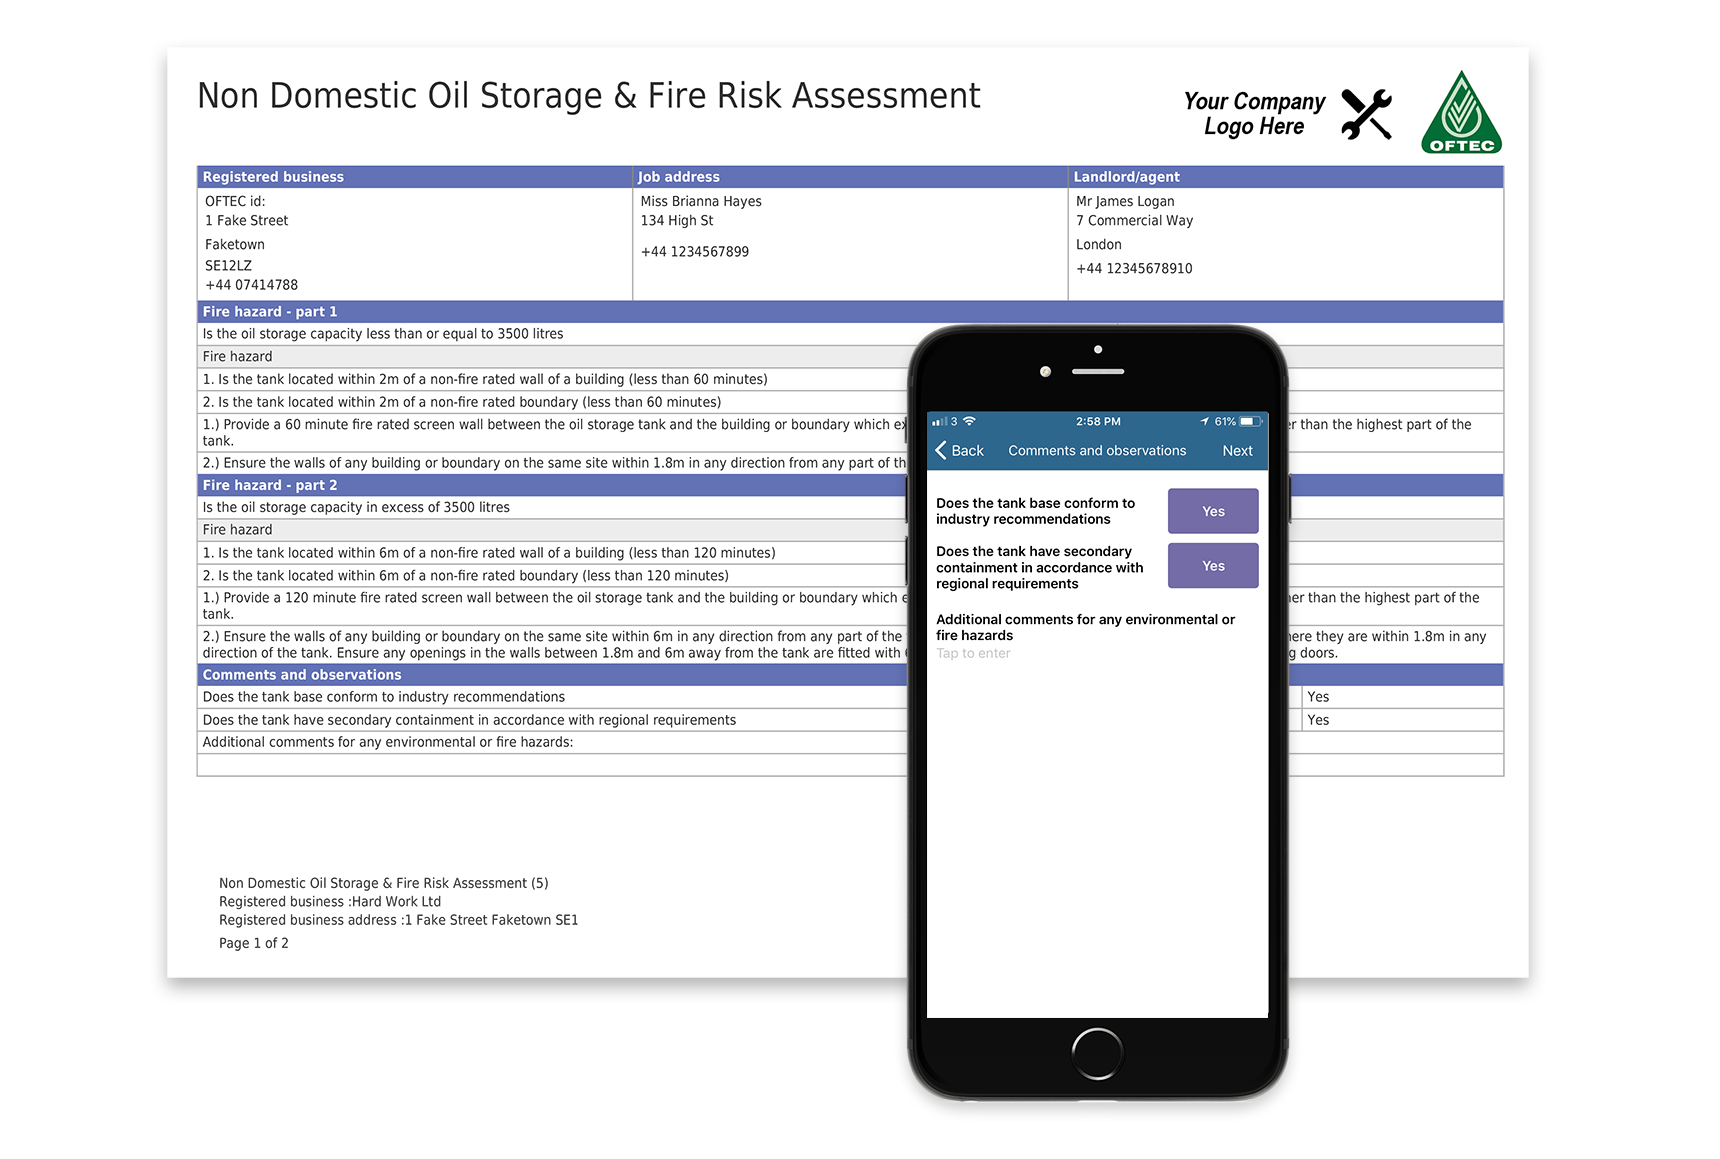 Non-Domestic-Oil-Storage-&-Fire-Risk-Assessment-5-1